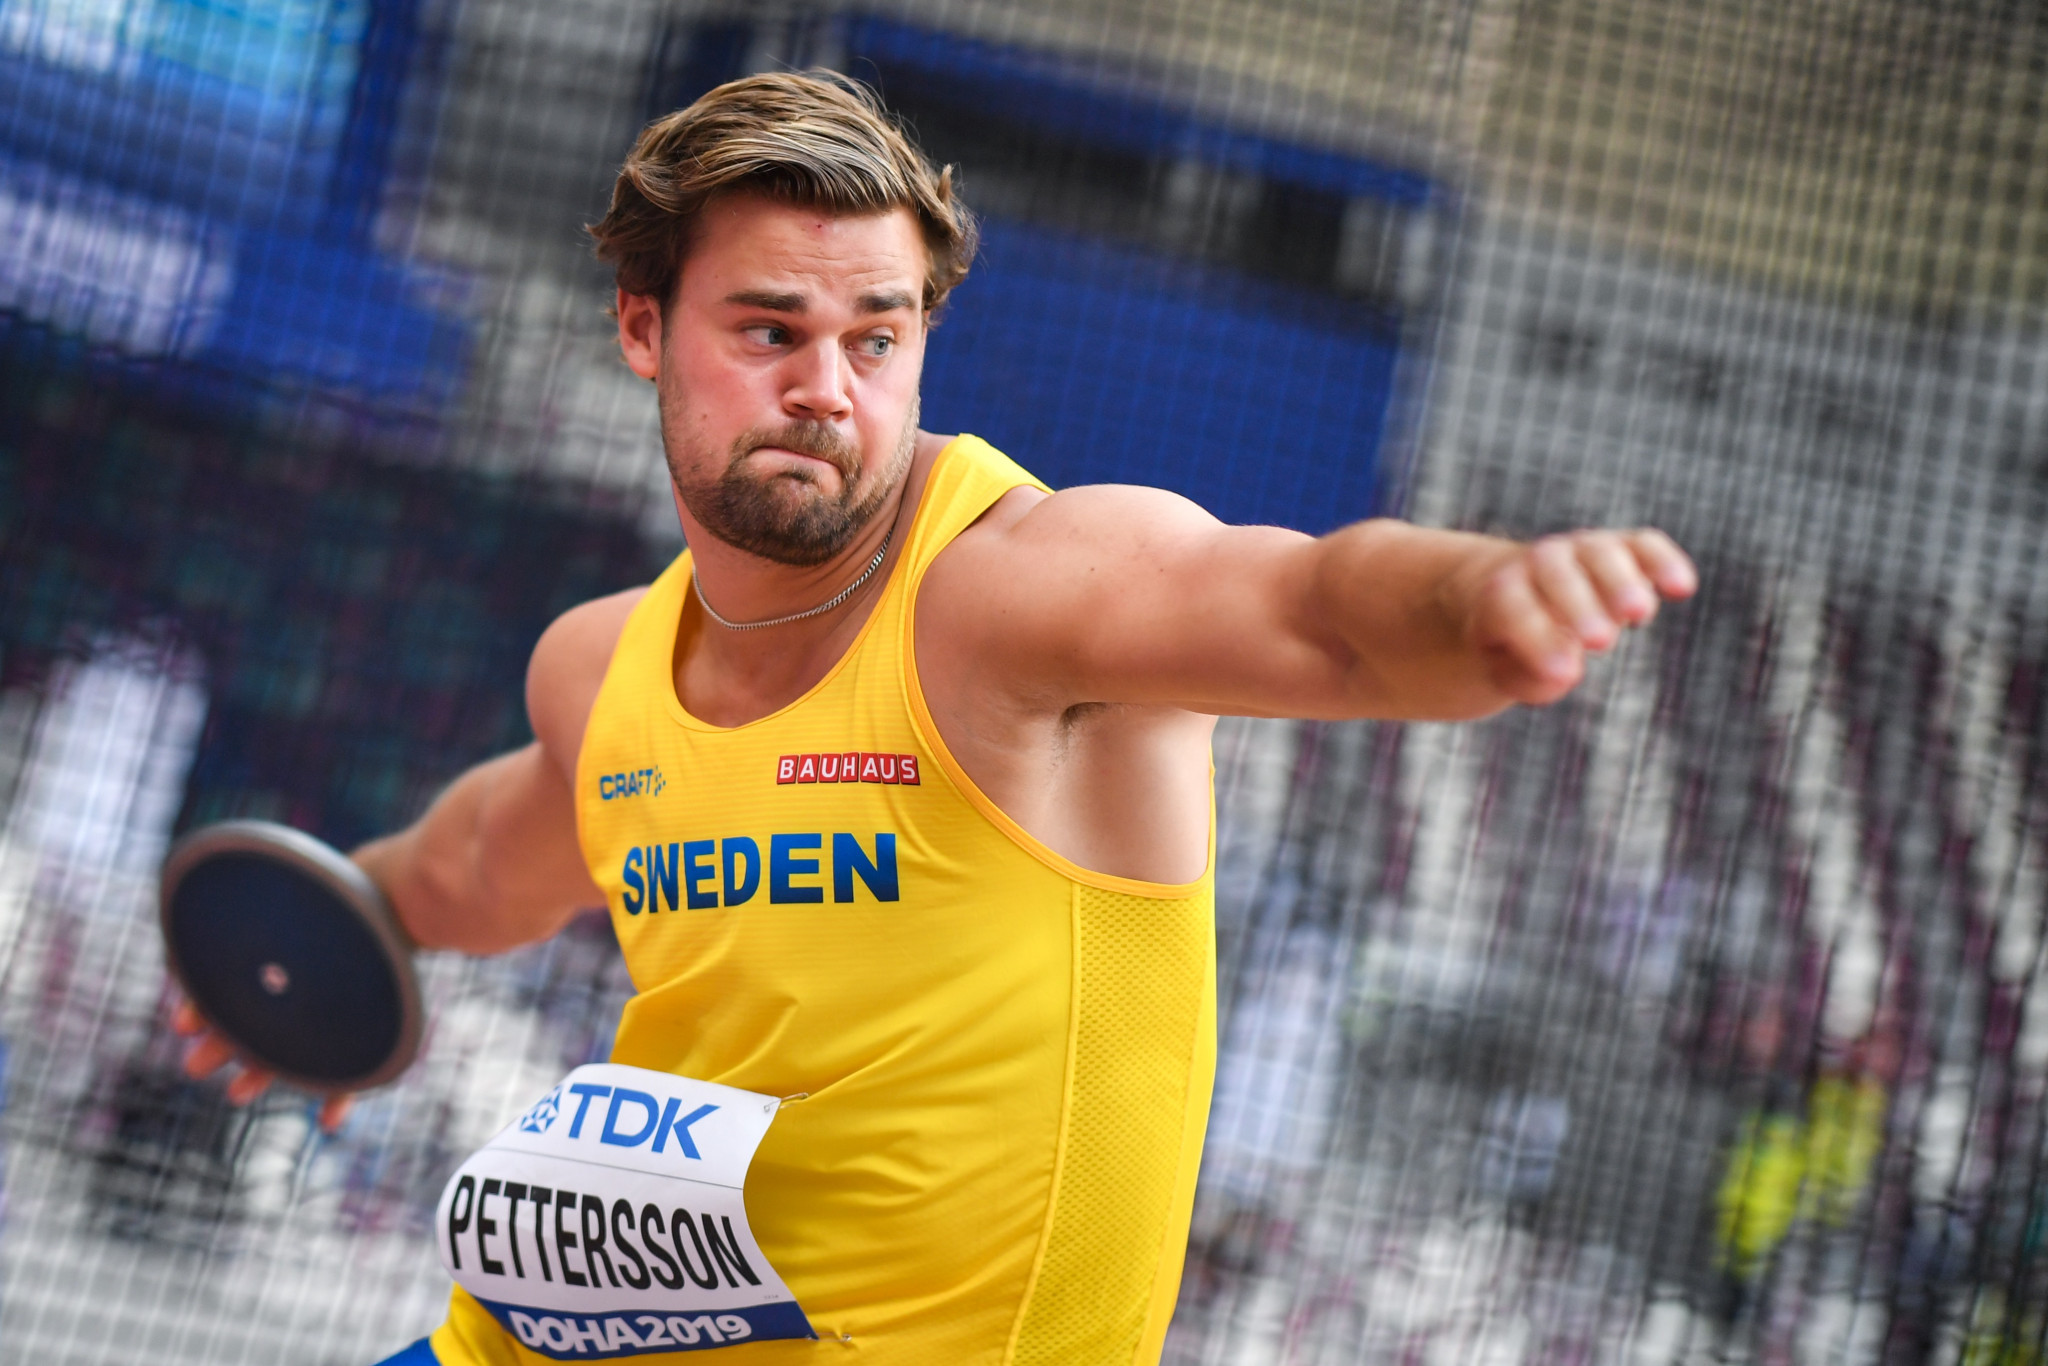 Pettersson takes discus European lead in rare athletics meeting held in Sweden